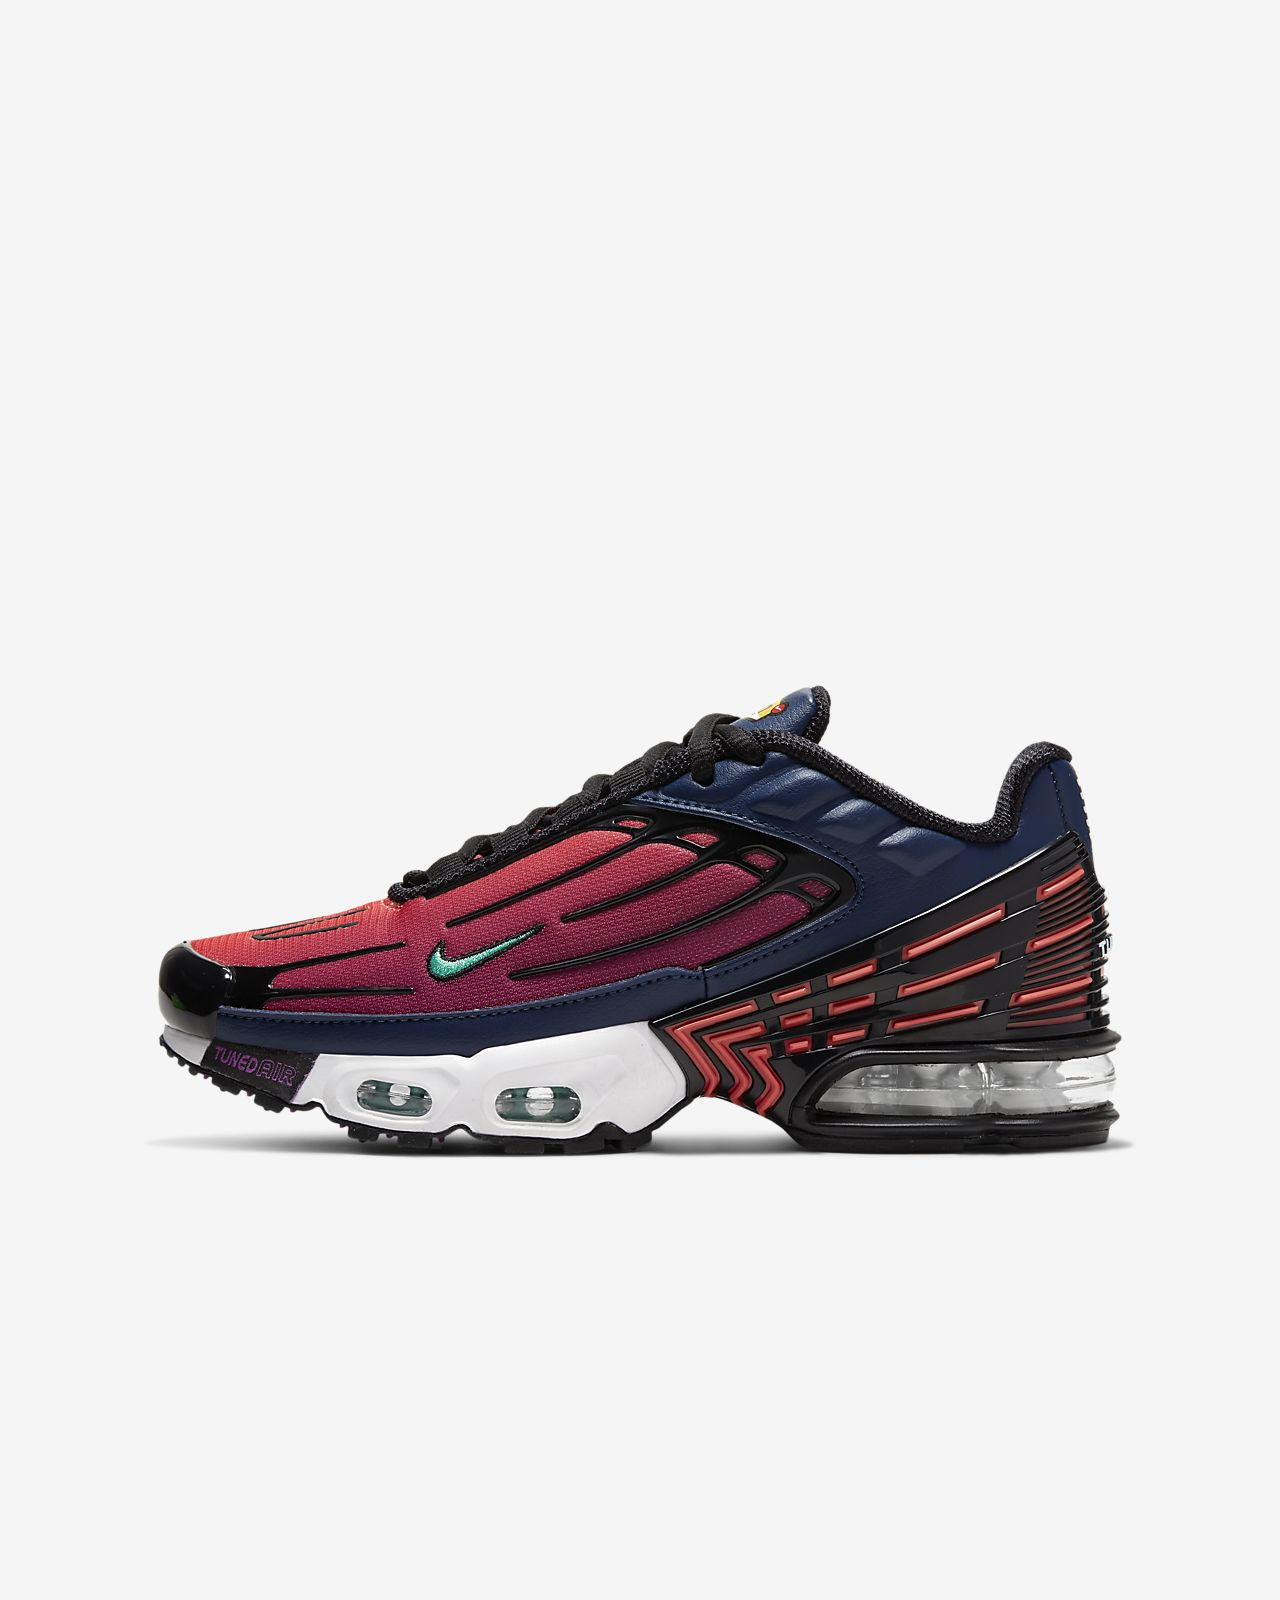 Nike Air Max Plus 3 Kinderschoen